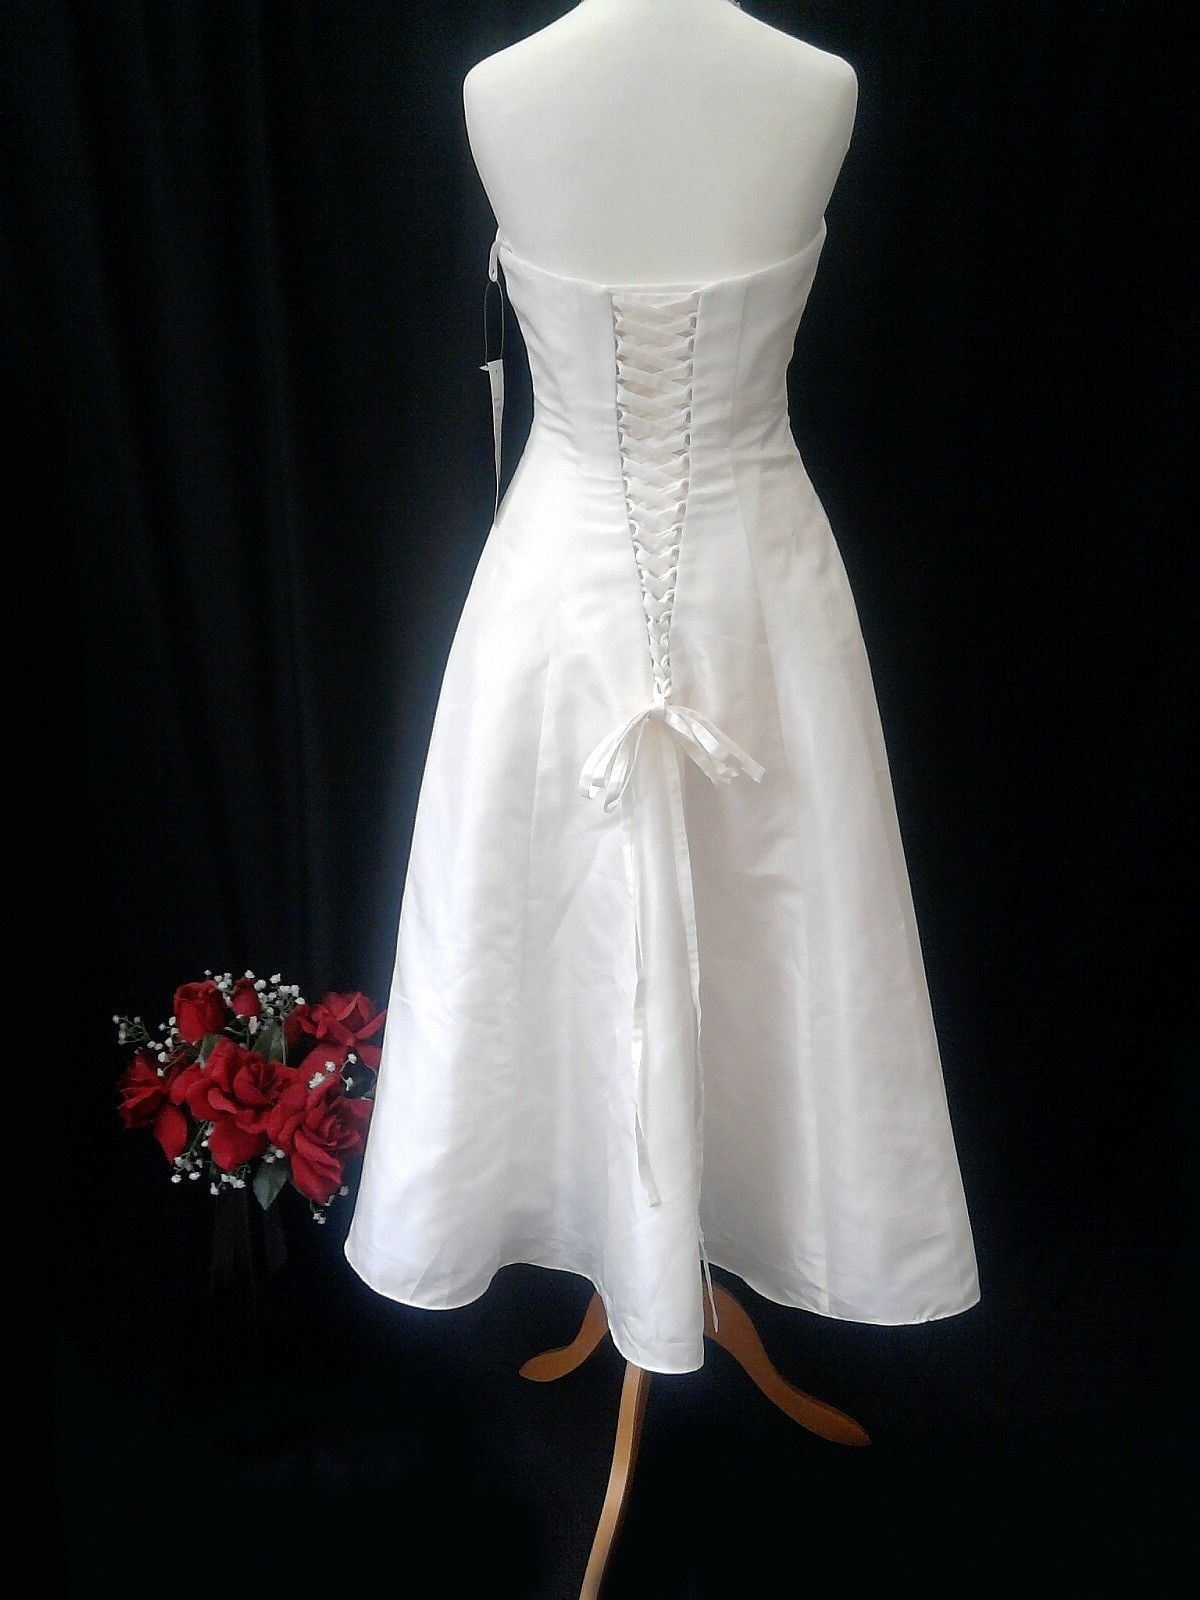 Ivory calf length plain giovanna wedding dress size new with